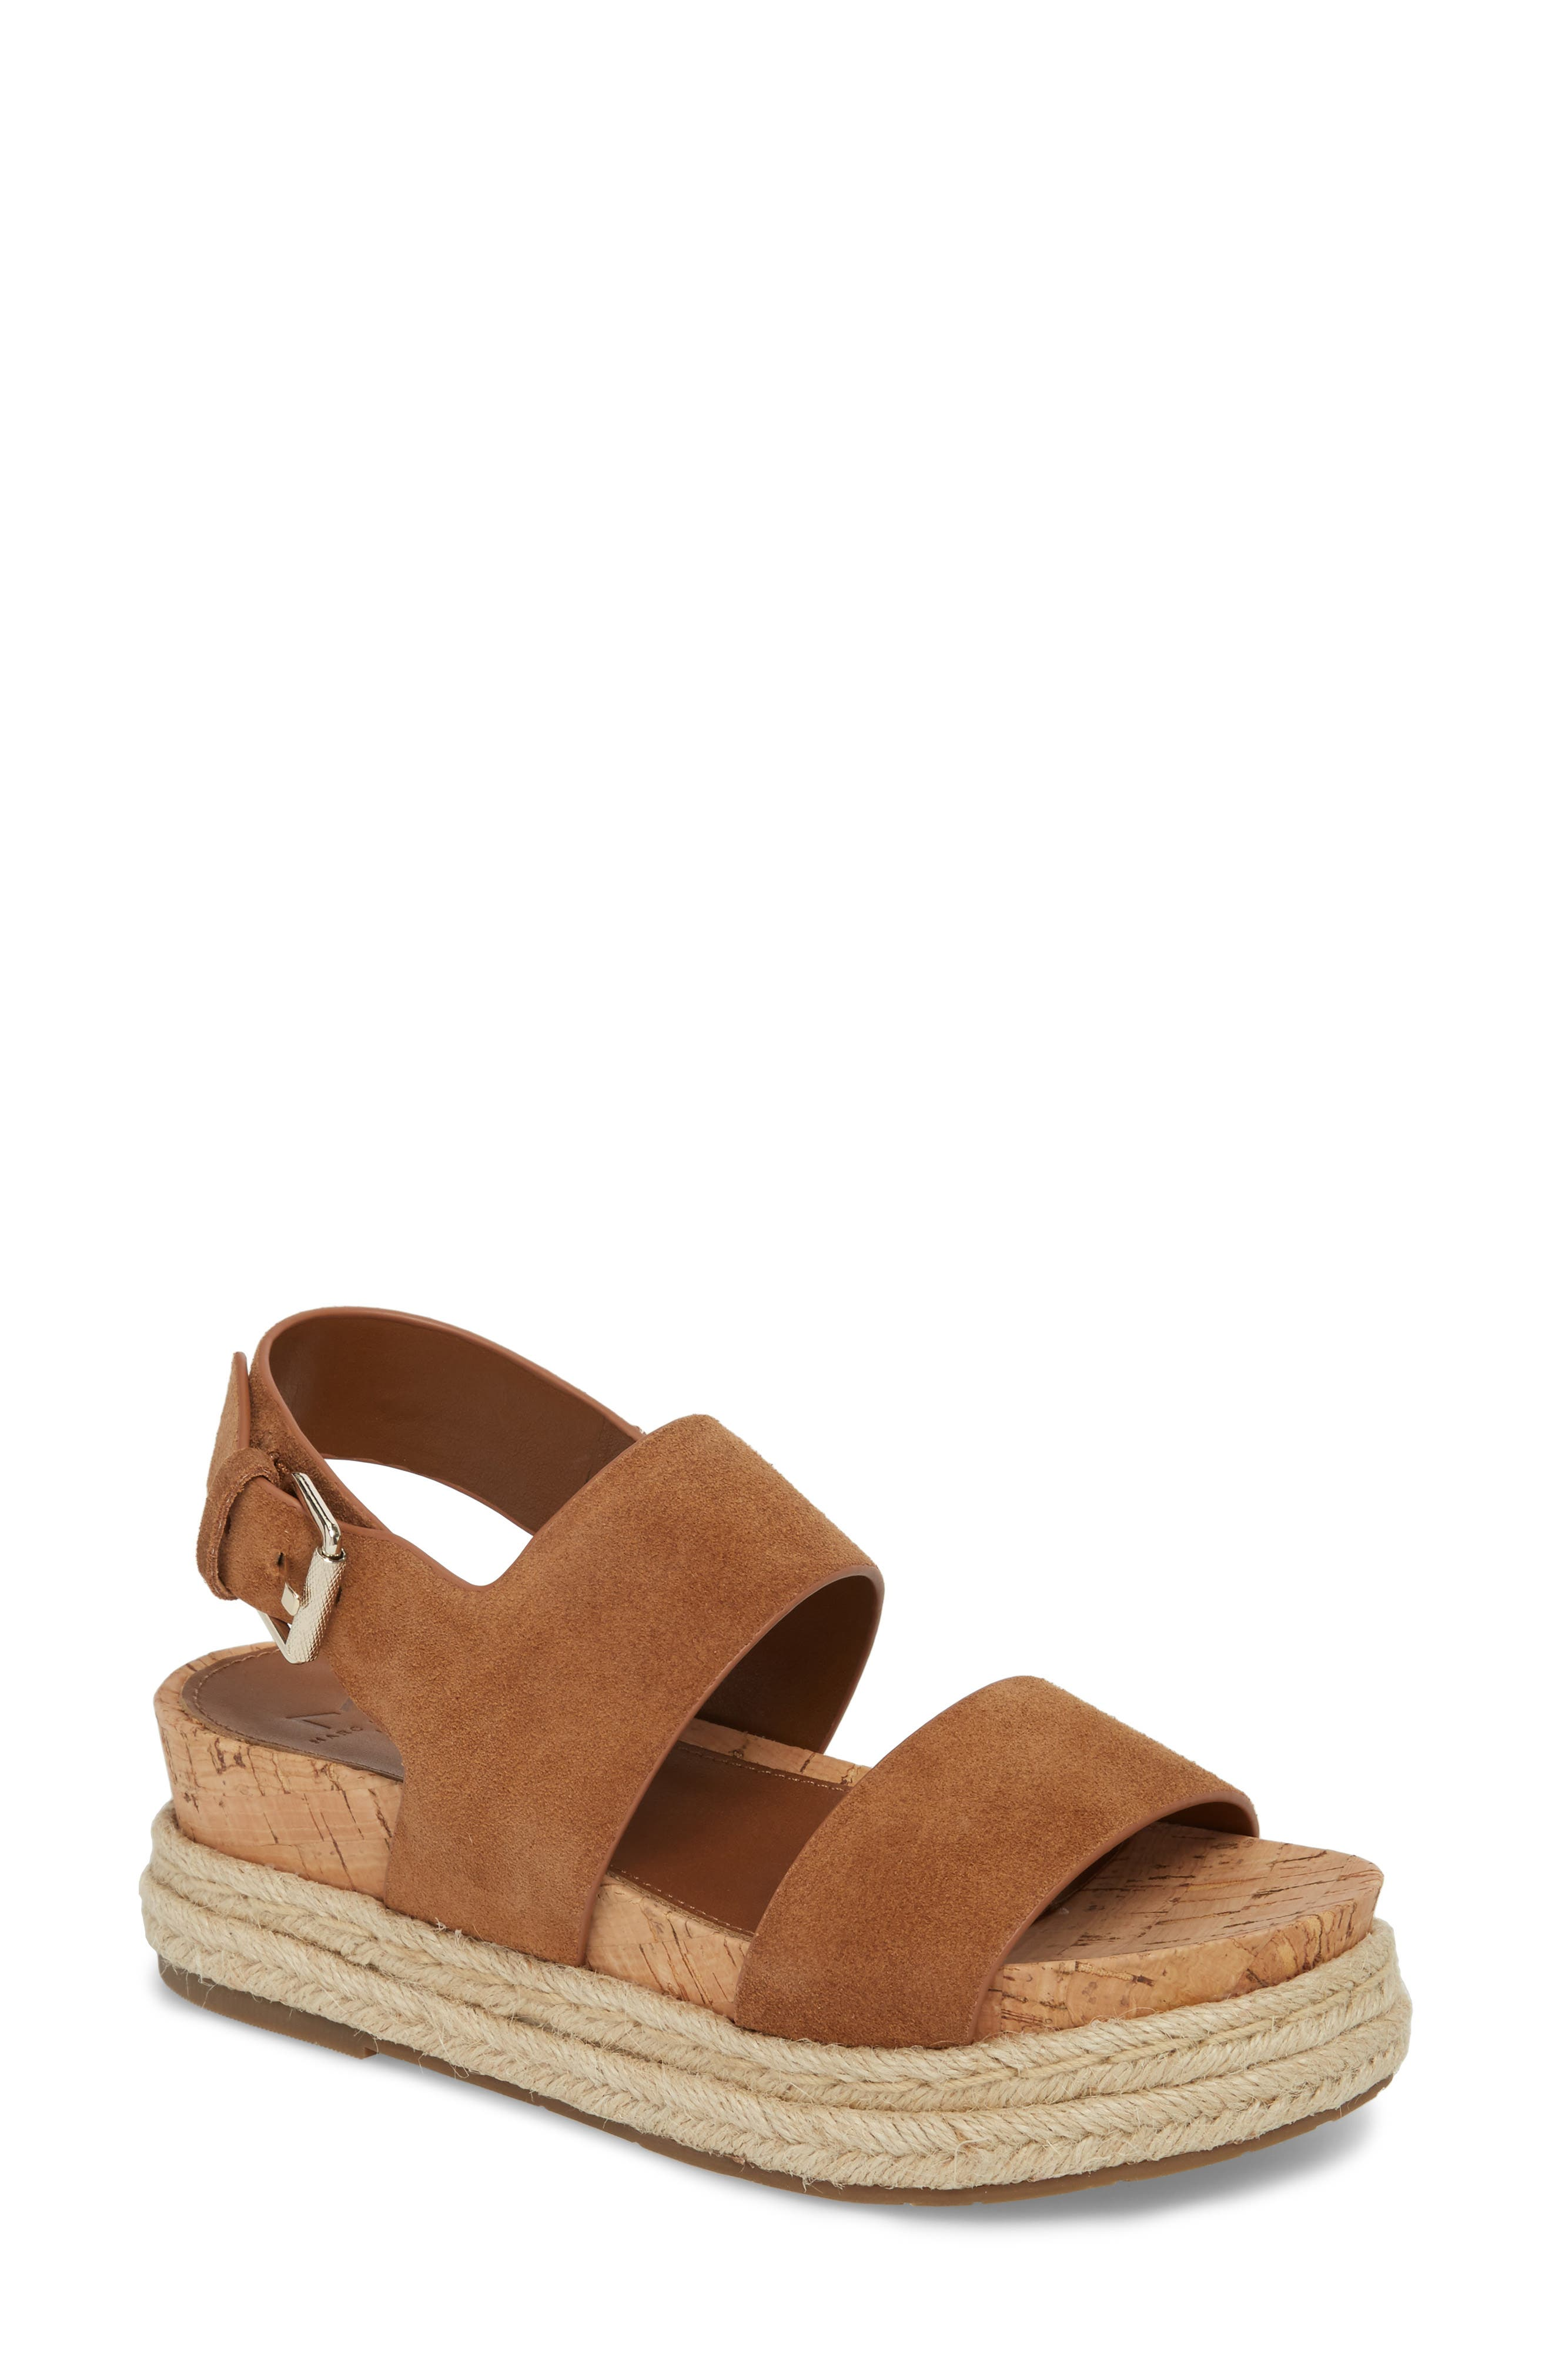 Marc Fisher LTD Oria Espadrille Platform Sandal (Women)